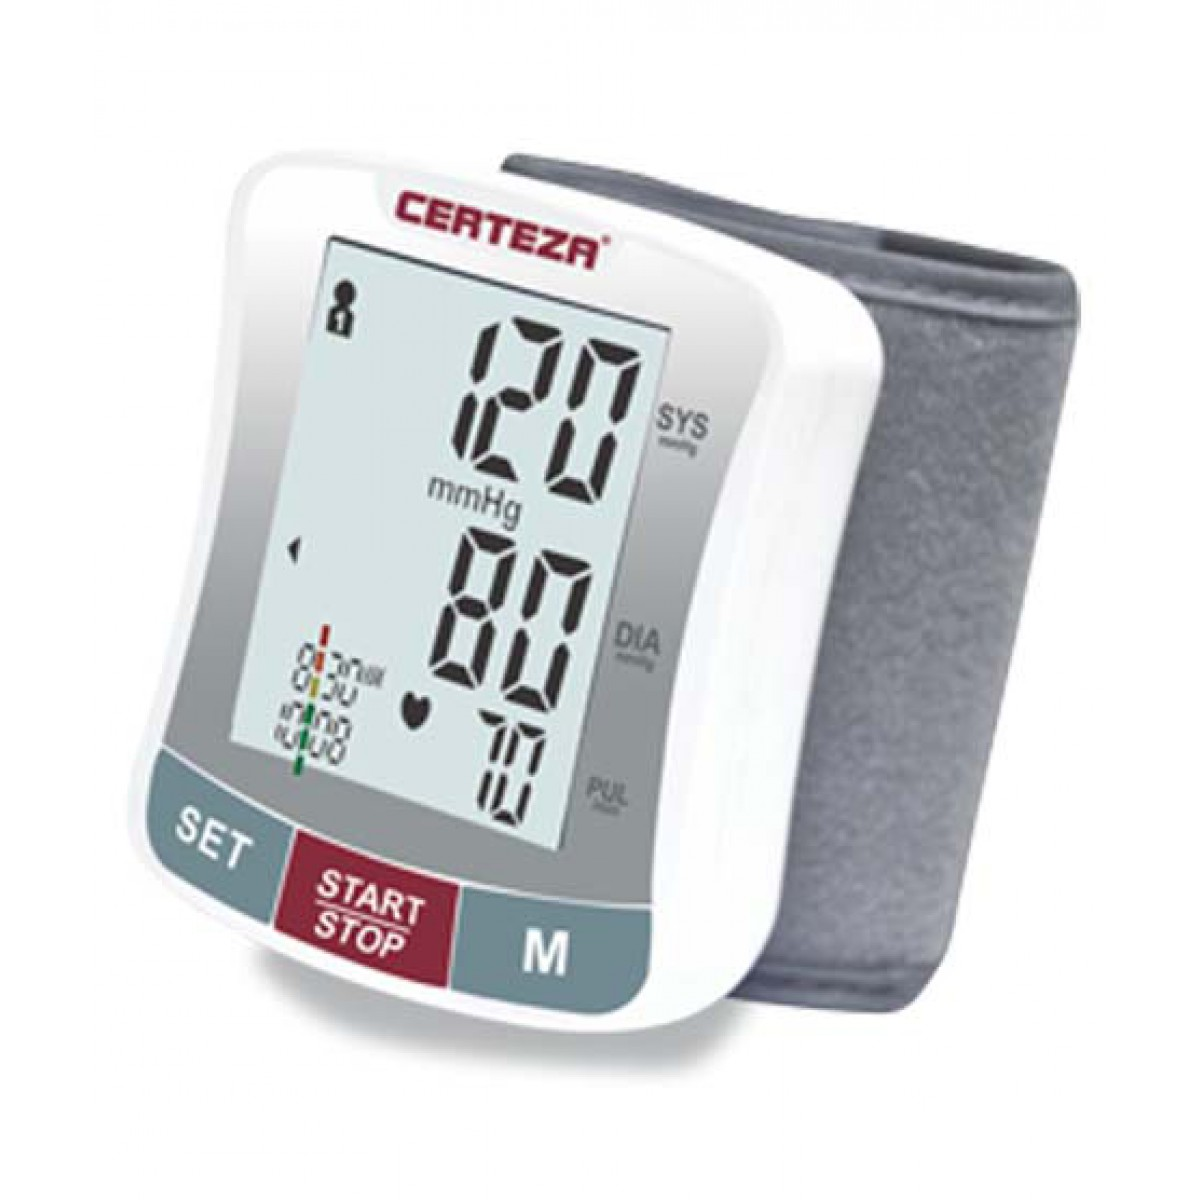 Certeza Wrist Digital Blood Pressure Monitor BM-307